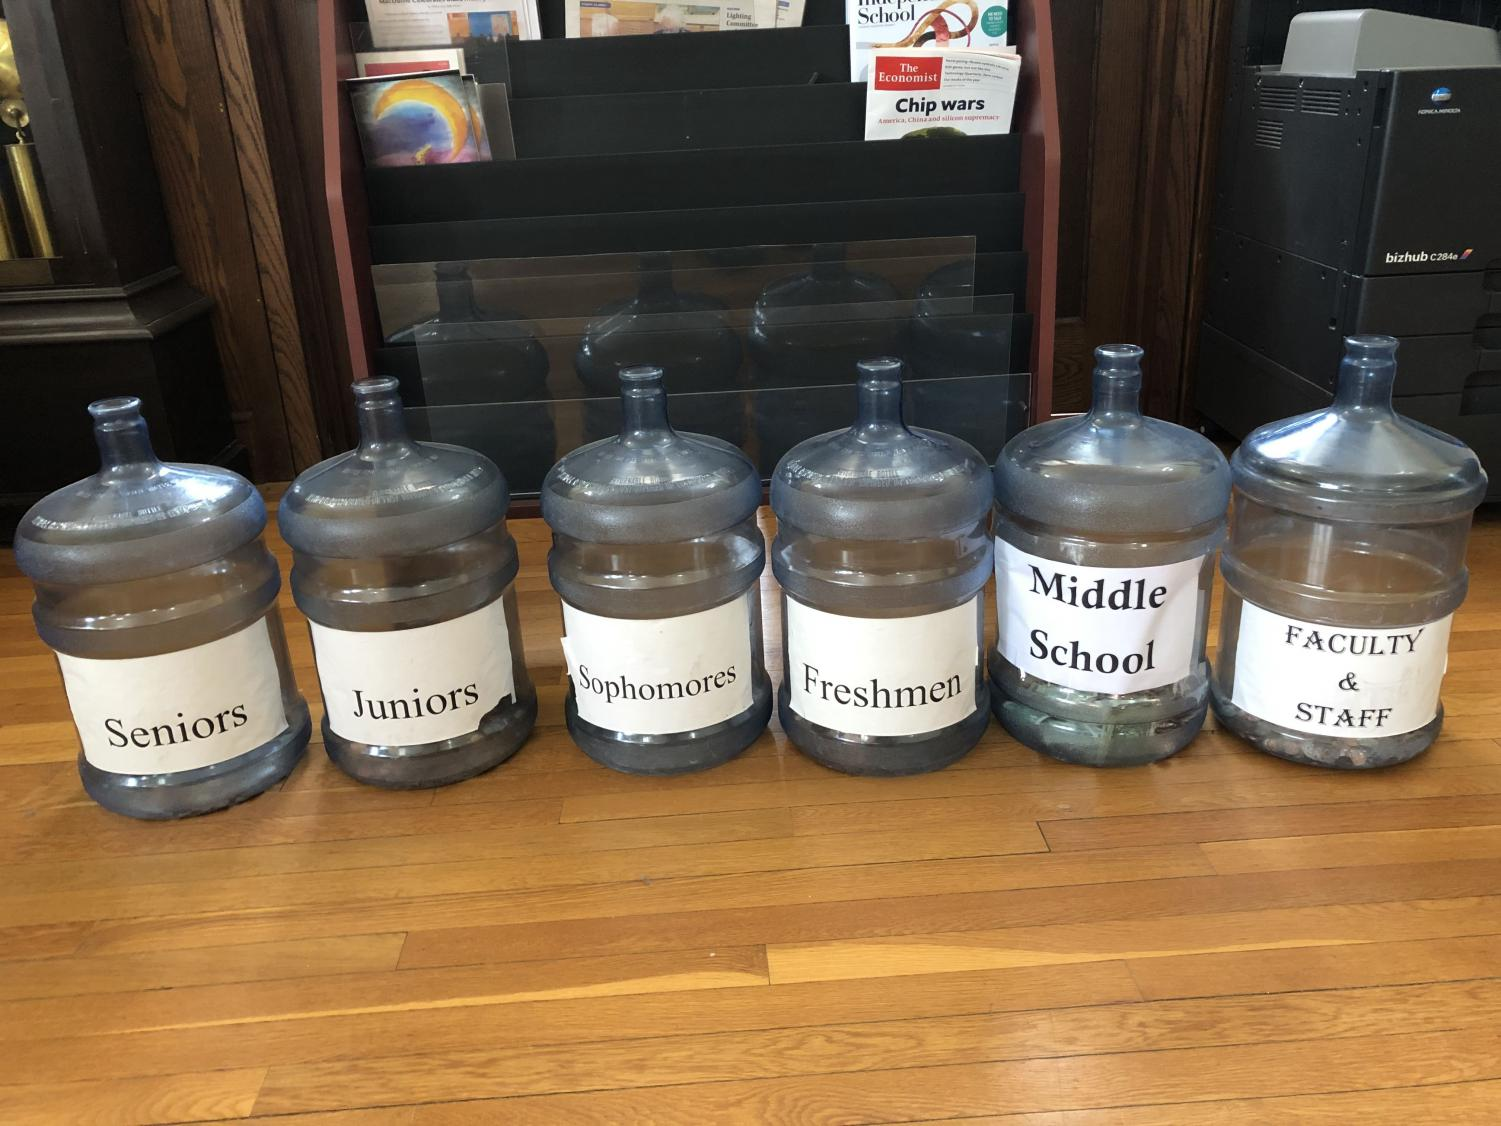 The jars holding money donated from each grade. Students can place their change in these jars to participate in the fundraiser. Photo by Mohammed Abbasi